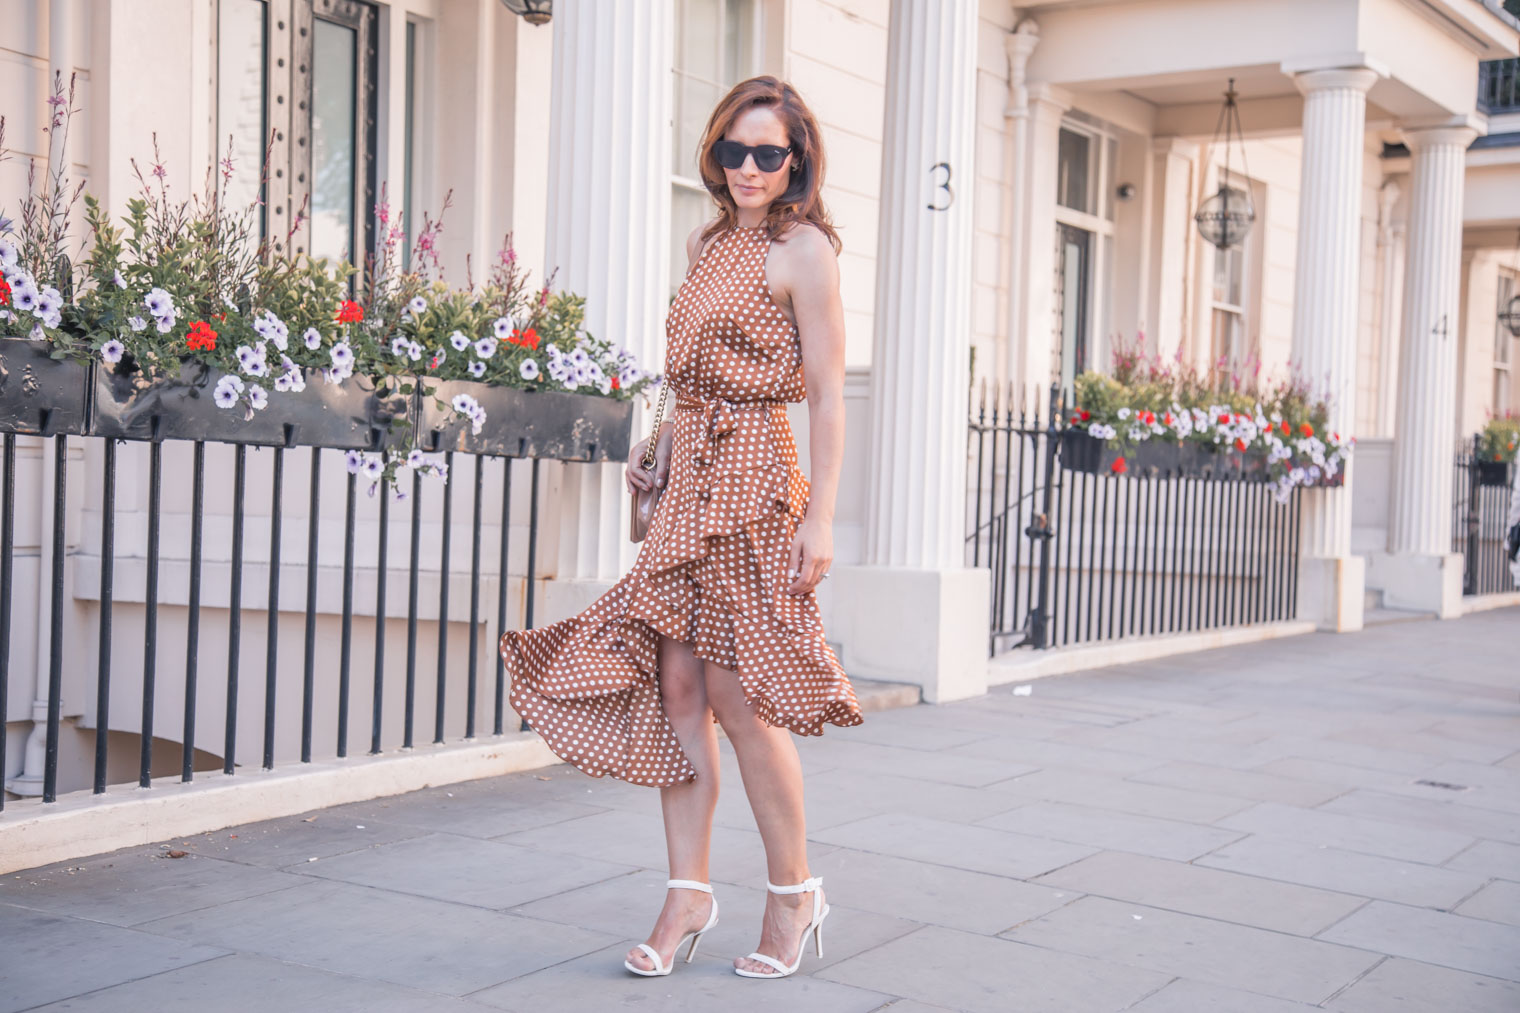 Brown polka dot dress by Forever Unique